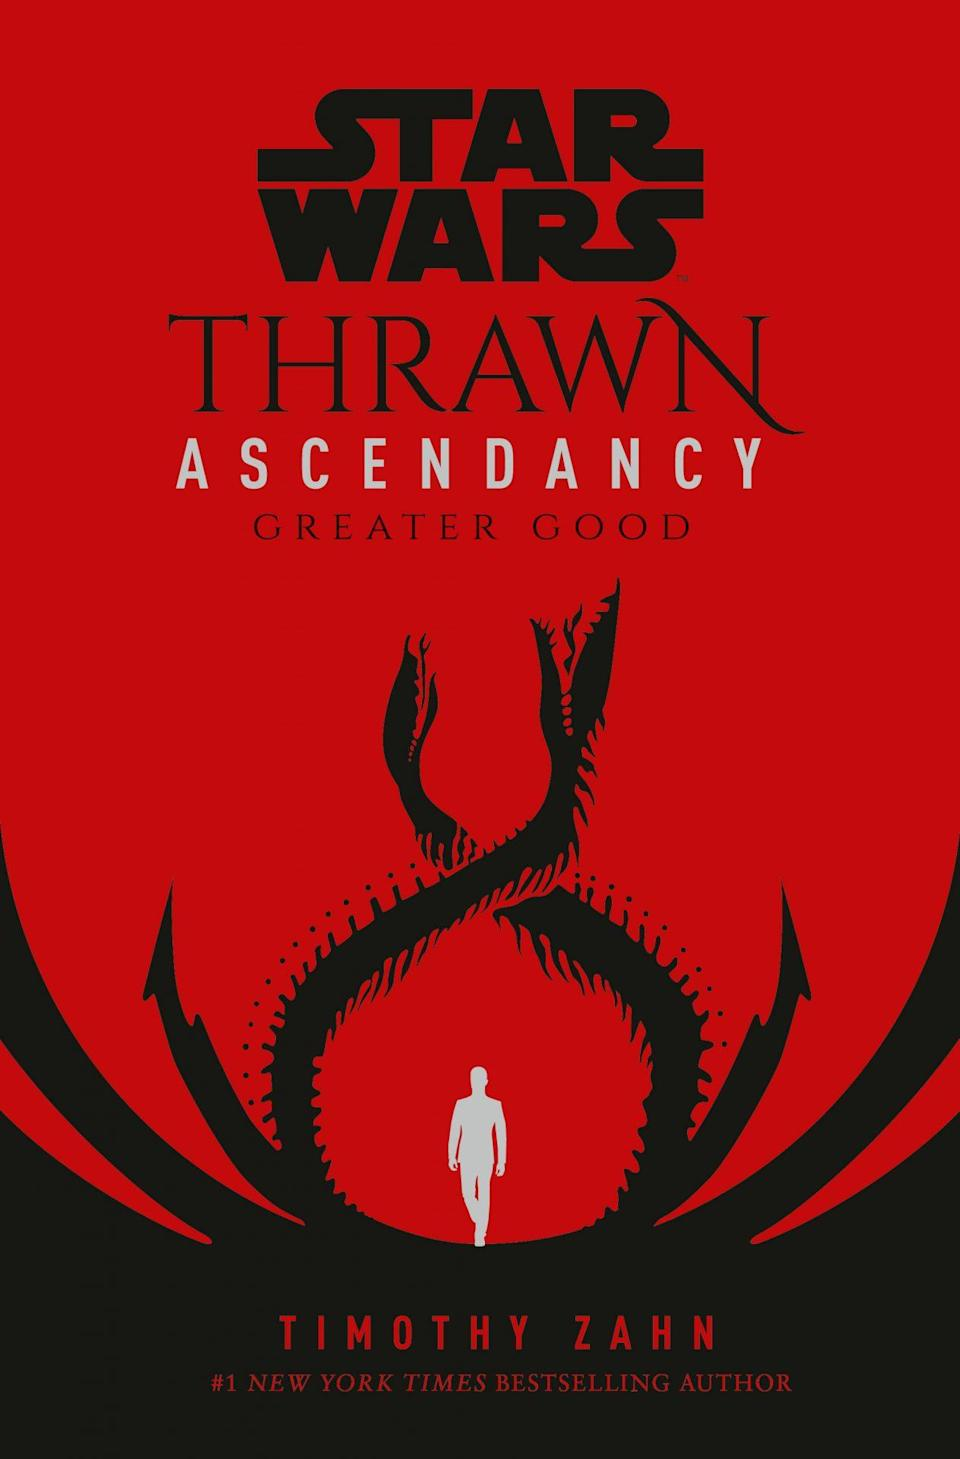 Thrawn Ascendancy Greater Good book cover has a white silhouette between two intertwined serpent-like creatures